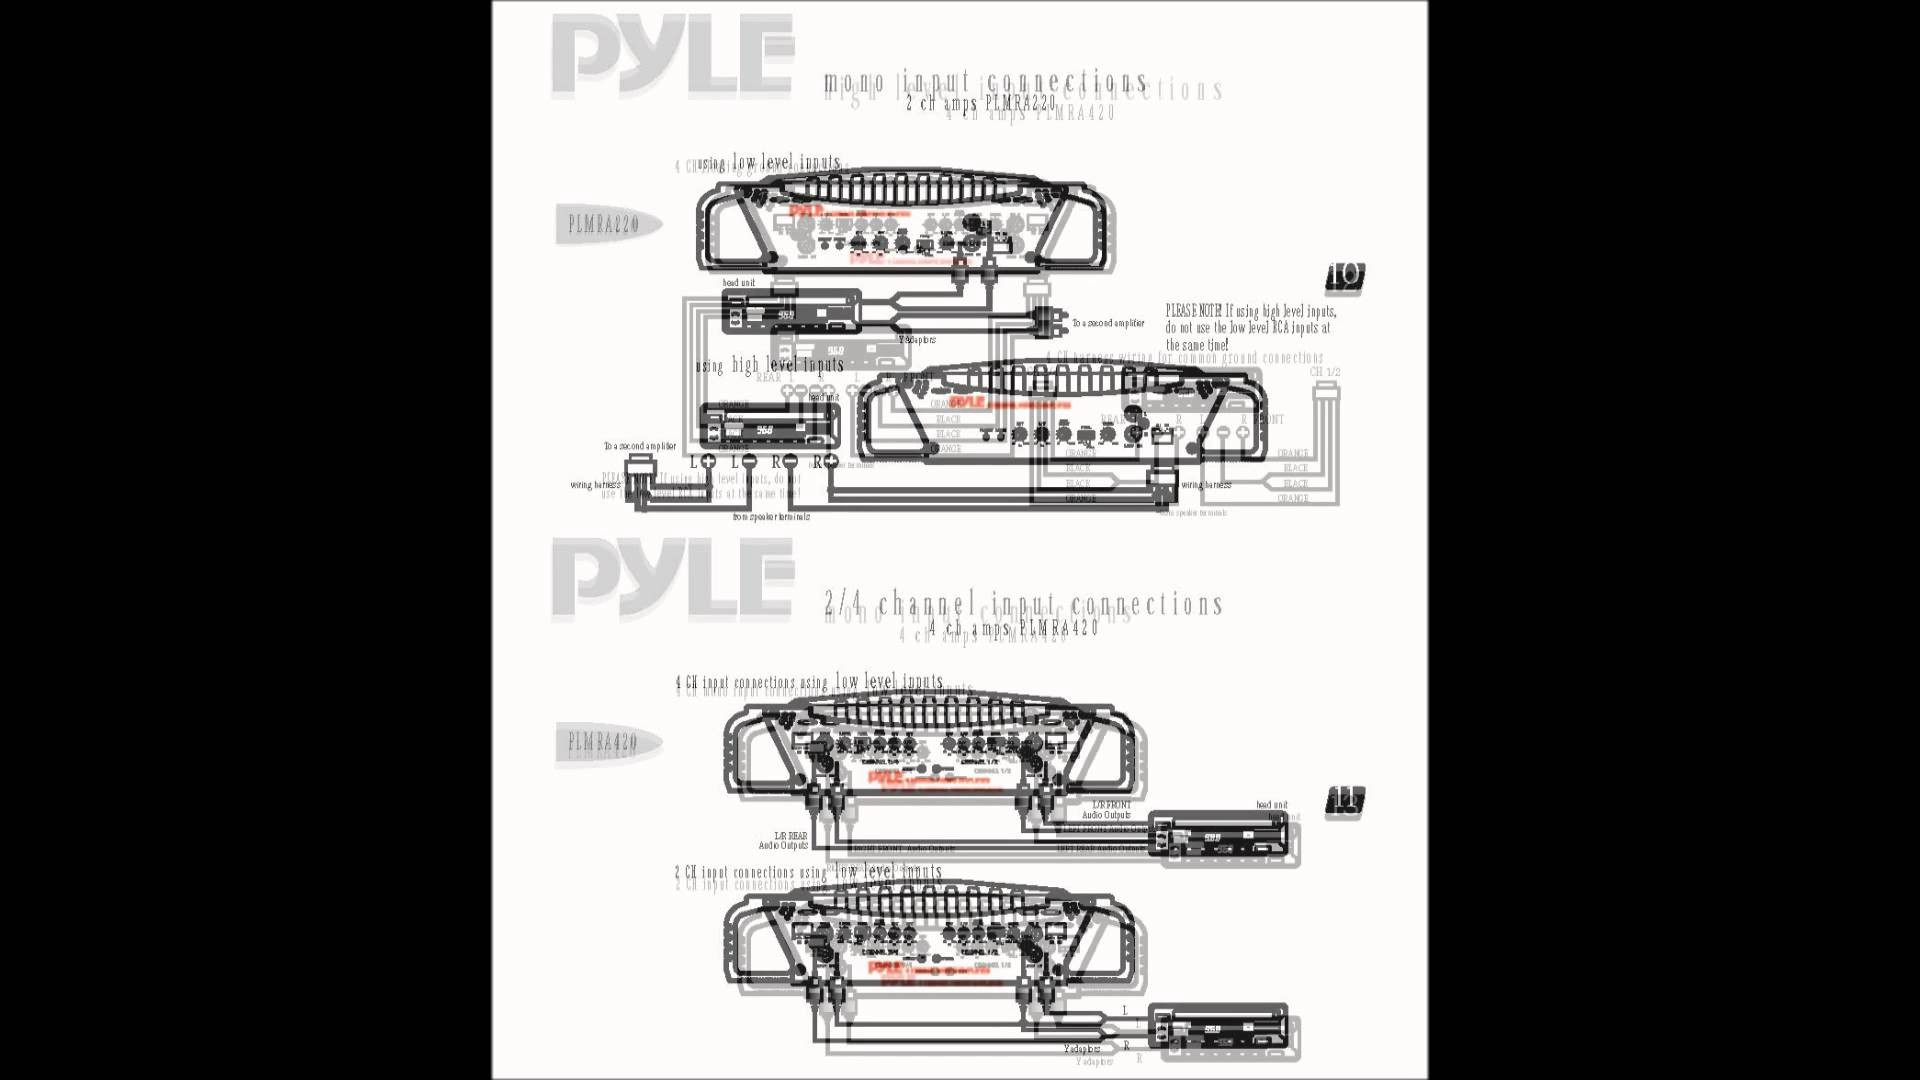 Pyle Hydra Amp Wiring Diagram Best Of Manual Guide